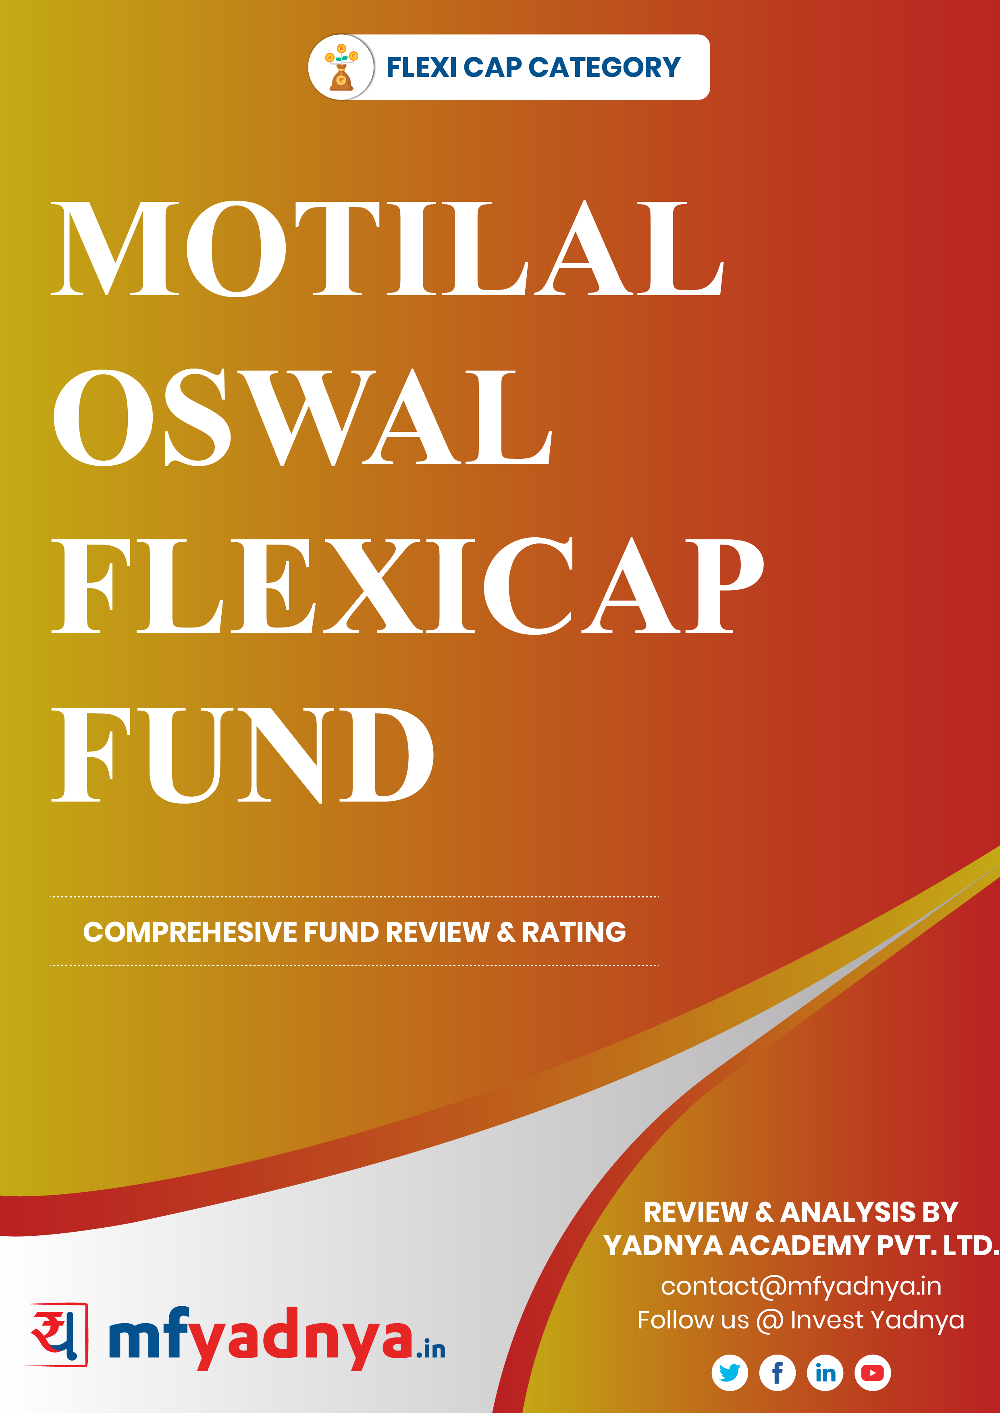 This e-book offers a comprehensive mutual fund review of Motilal Oswal 35 fund for multi-cap category. It reviews the fund's return, ratio, allocation etc. ✔ Detailed Mutual Fund Analysis ✔ Latest Research Reports